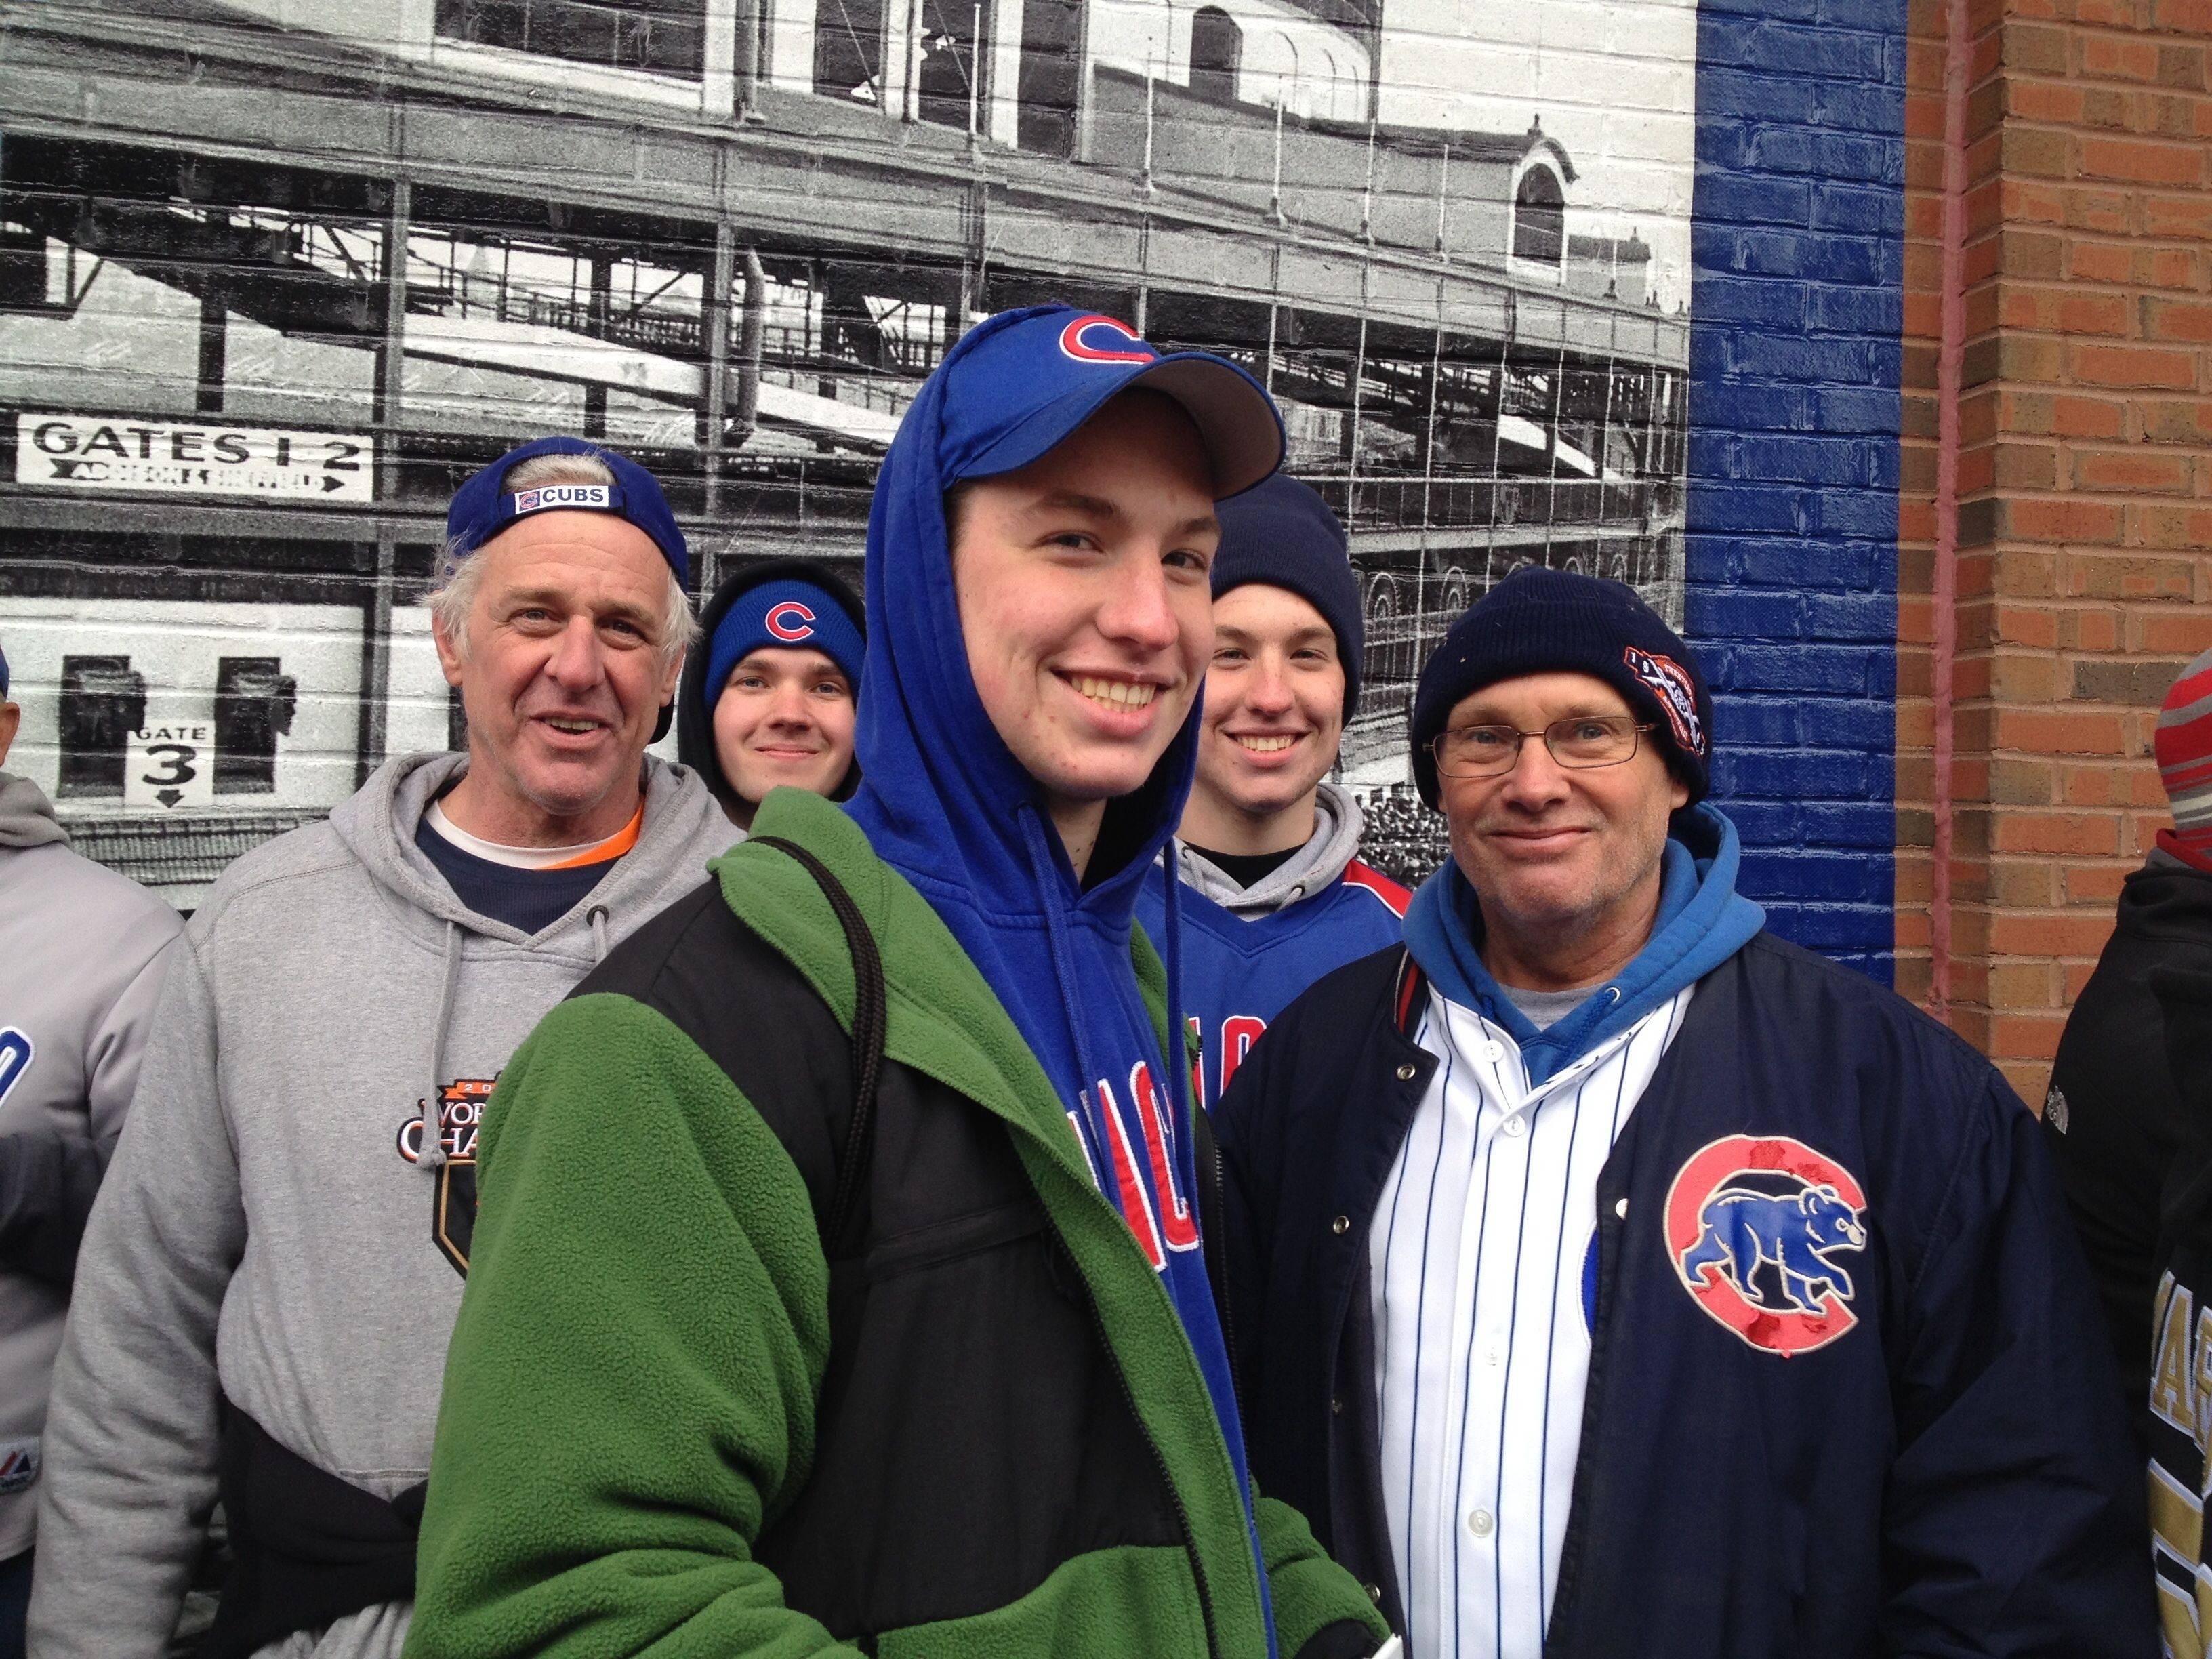 "From left, Pete Smart, Jonny Yarnall, Steven Smart, Sean Smart and Dave Yarnall were prepared for the cold afternoon at Wrigley Field. The Smarts, of Lake Villa, and Yarnalls, of Lindenhurst, play hockey together on Lake Linden, ""so we're used to the cold,"" Dave Yarnall says."